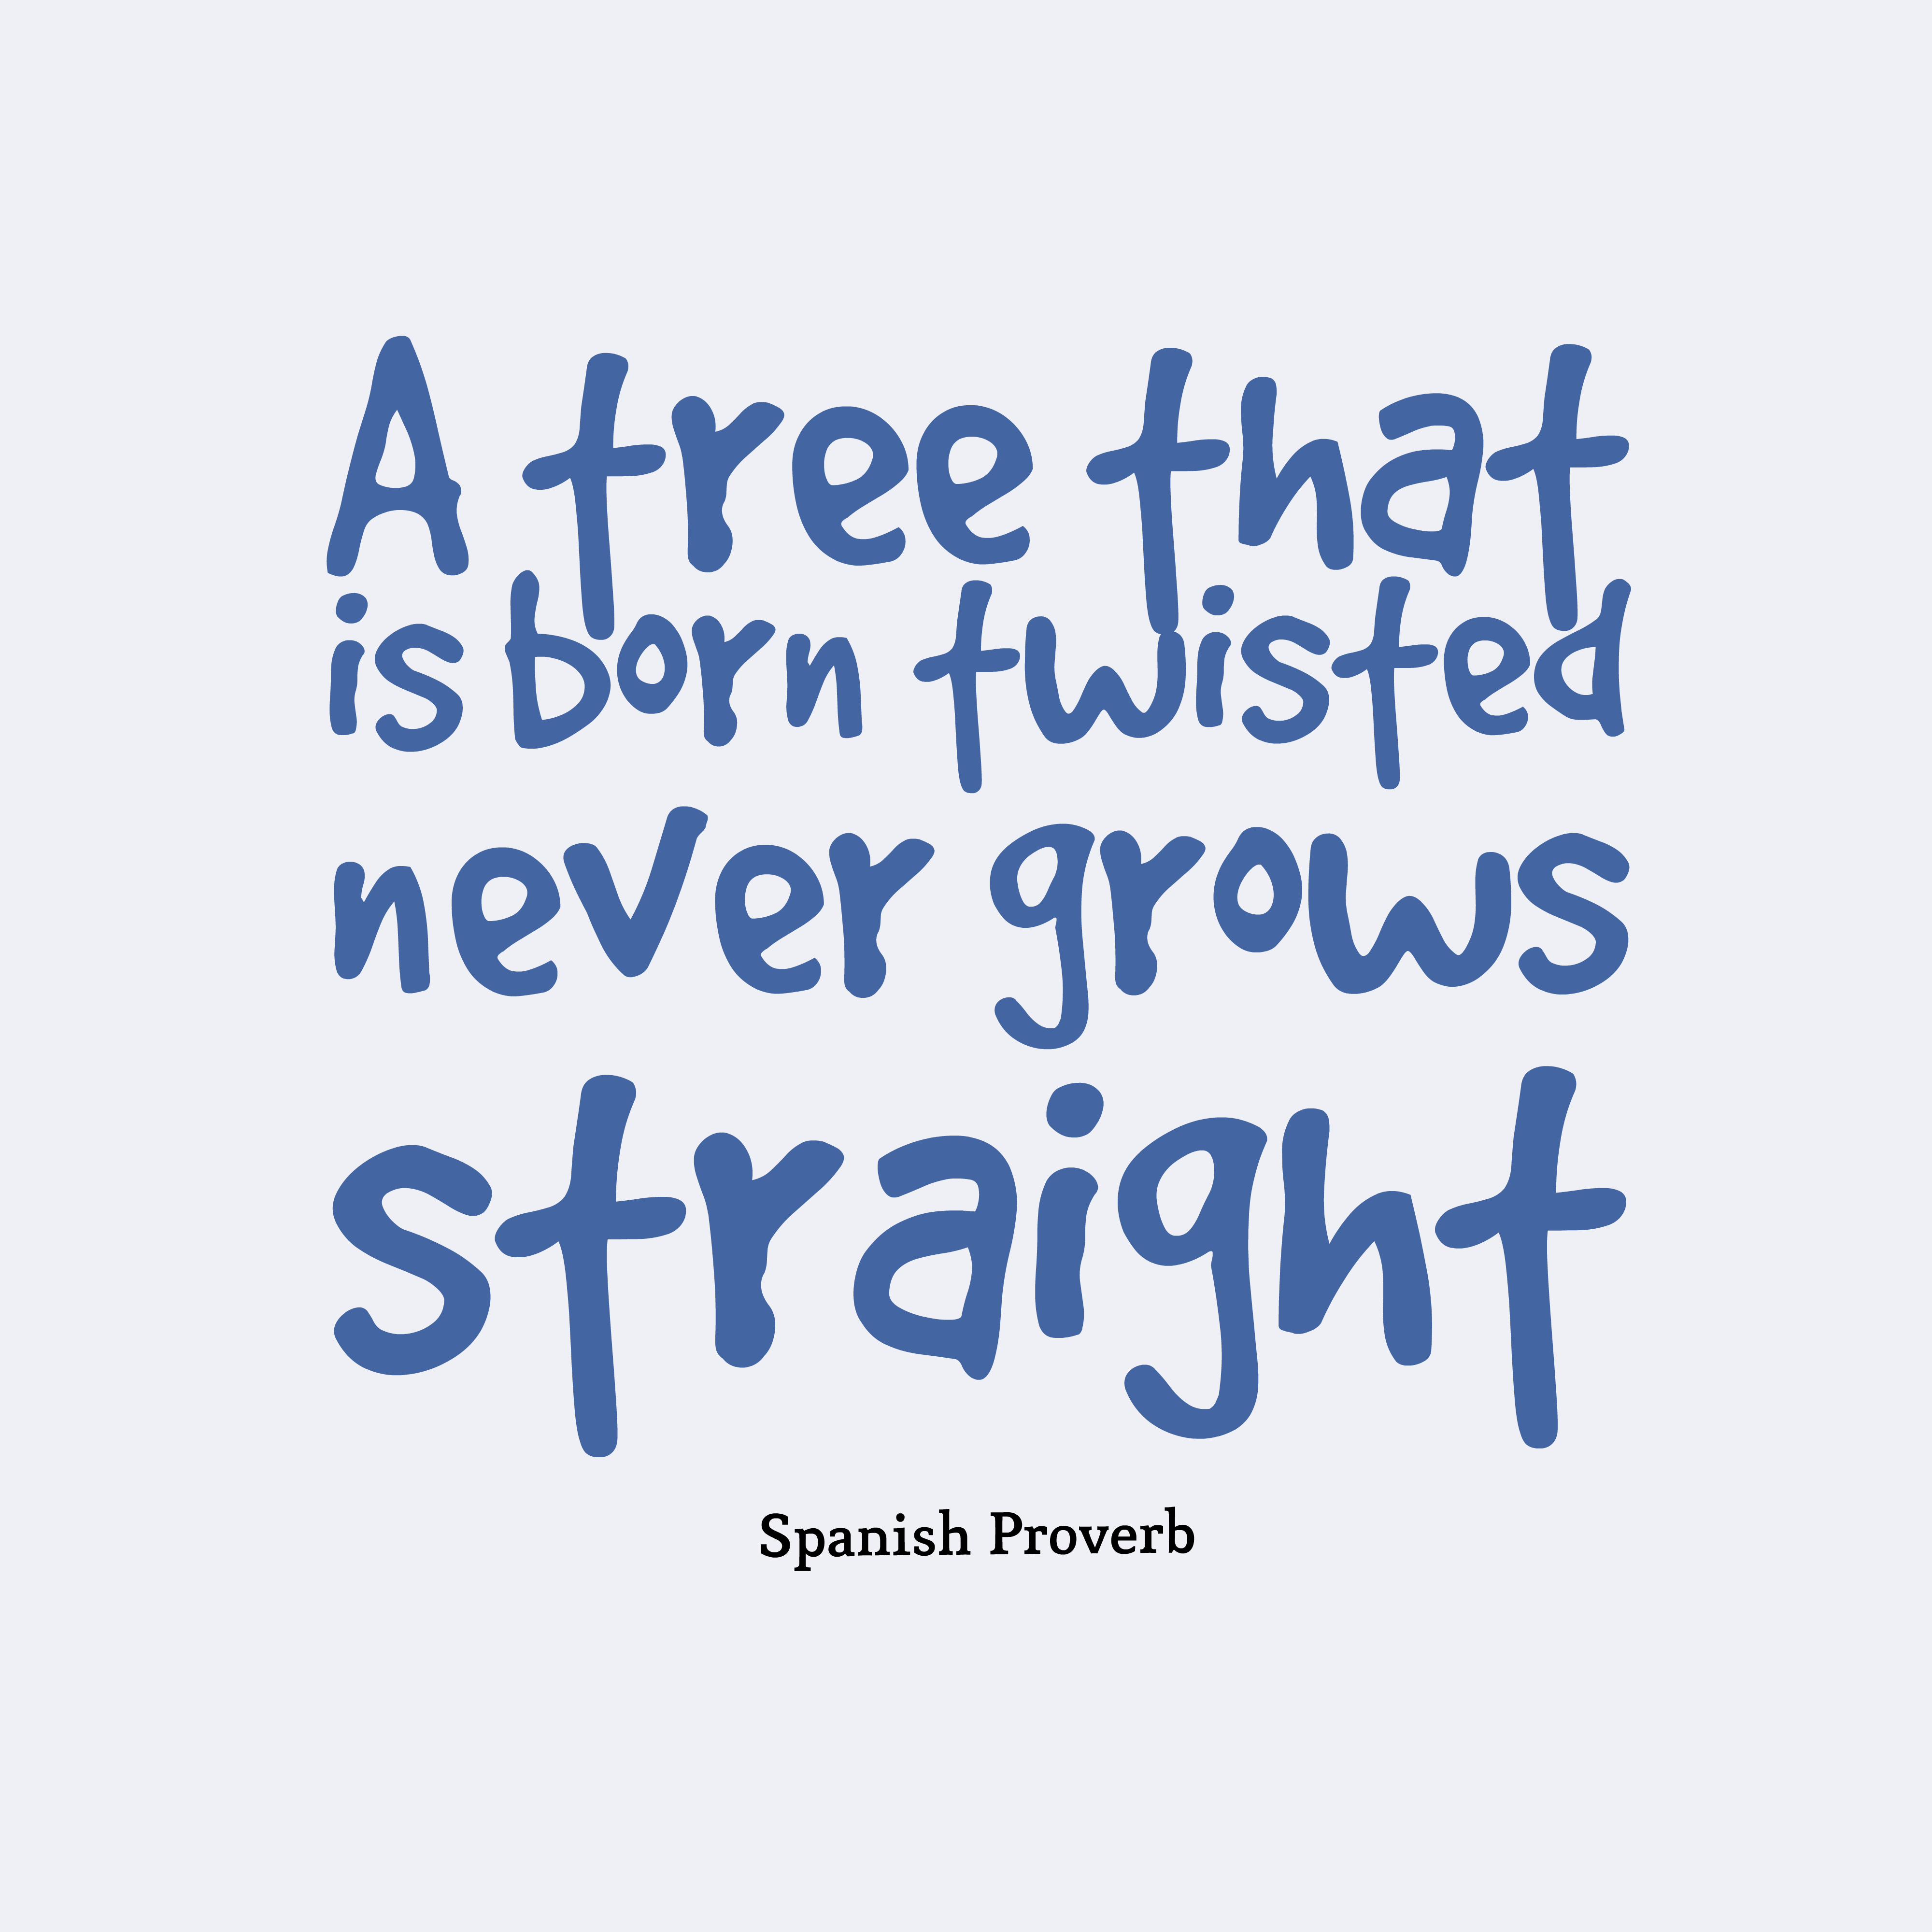 Quotes image of  A tree that is born twisted never grows straight